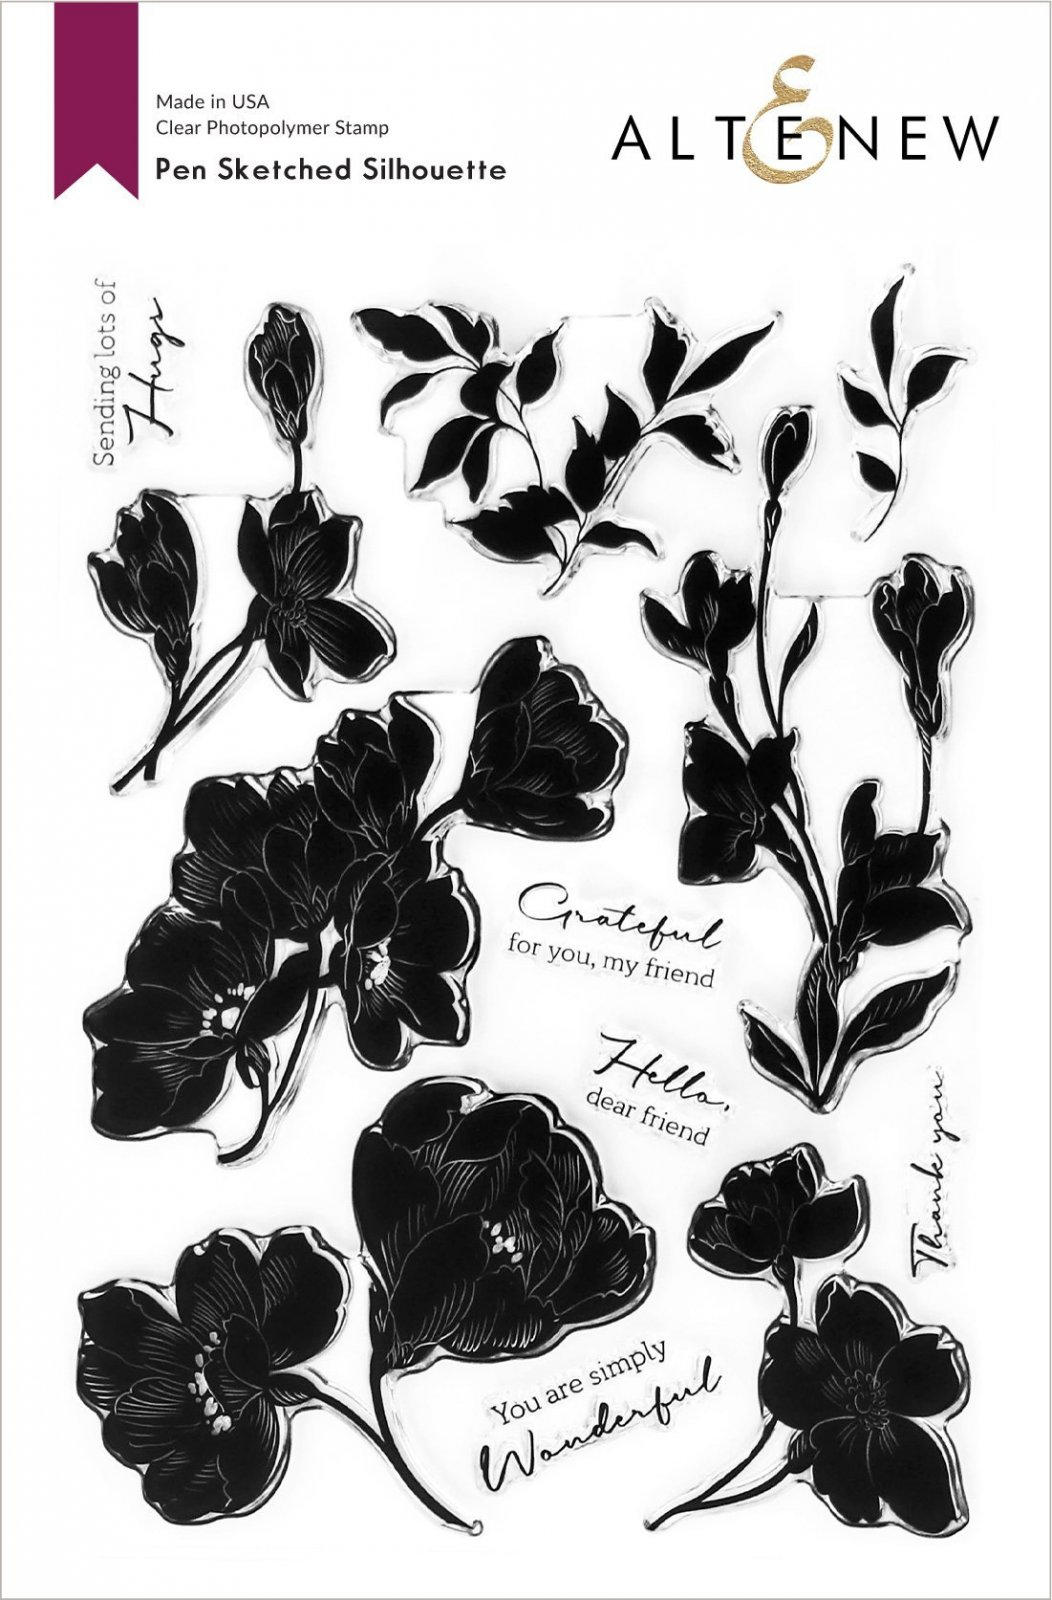 Altenew -  Clear Photopolymer Stamp & Die Set -  Pen Sketched Silhouette